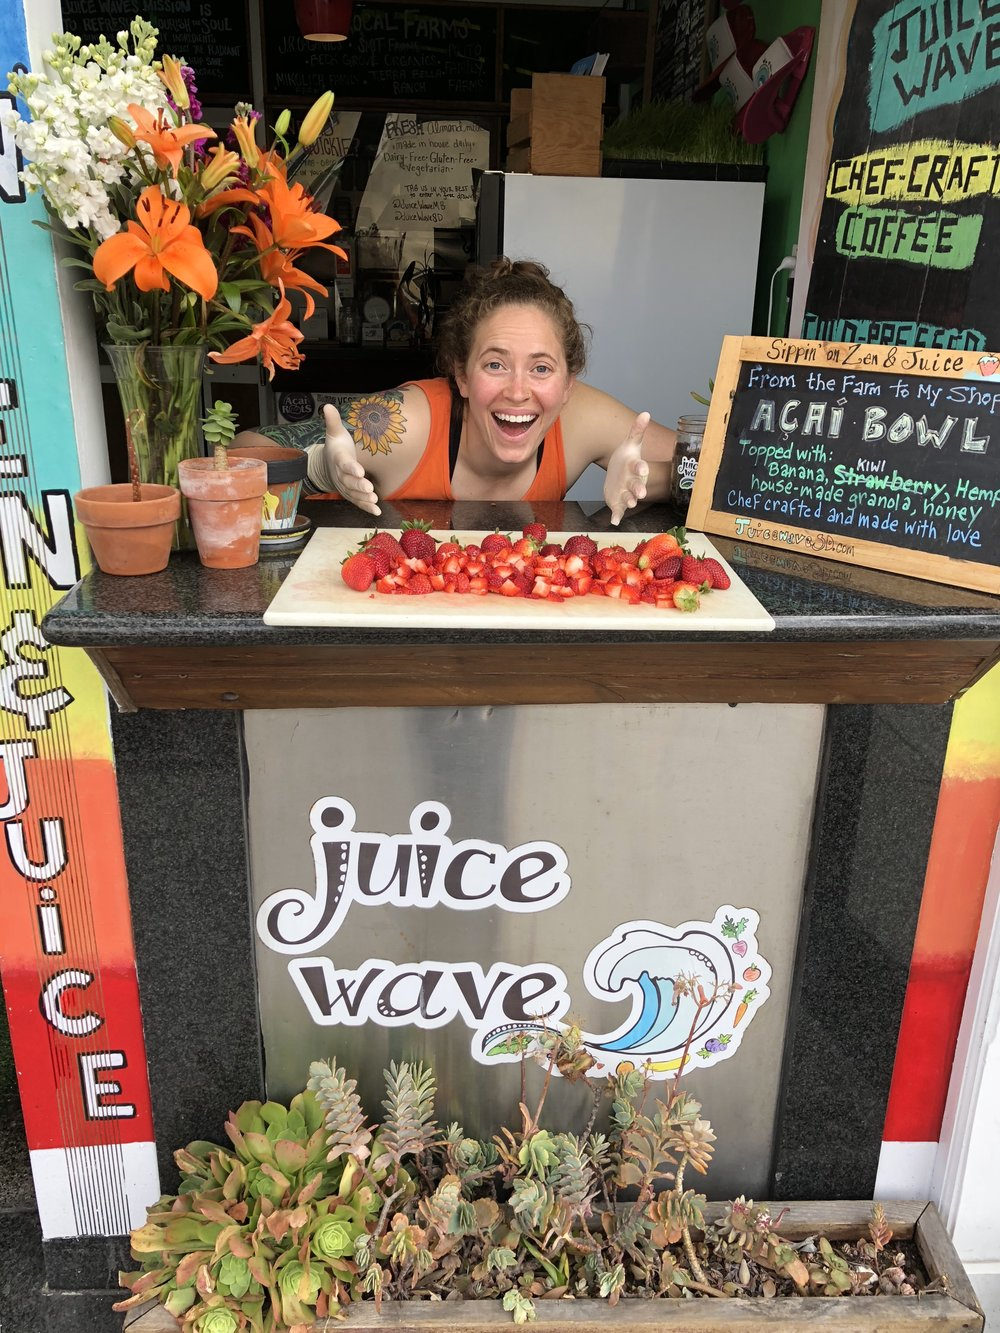 Juice Wave opened its first storefront in Mission Beach the first week of April 2015